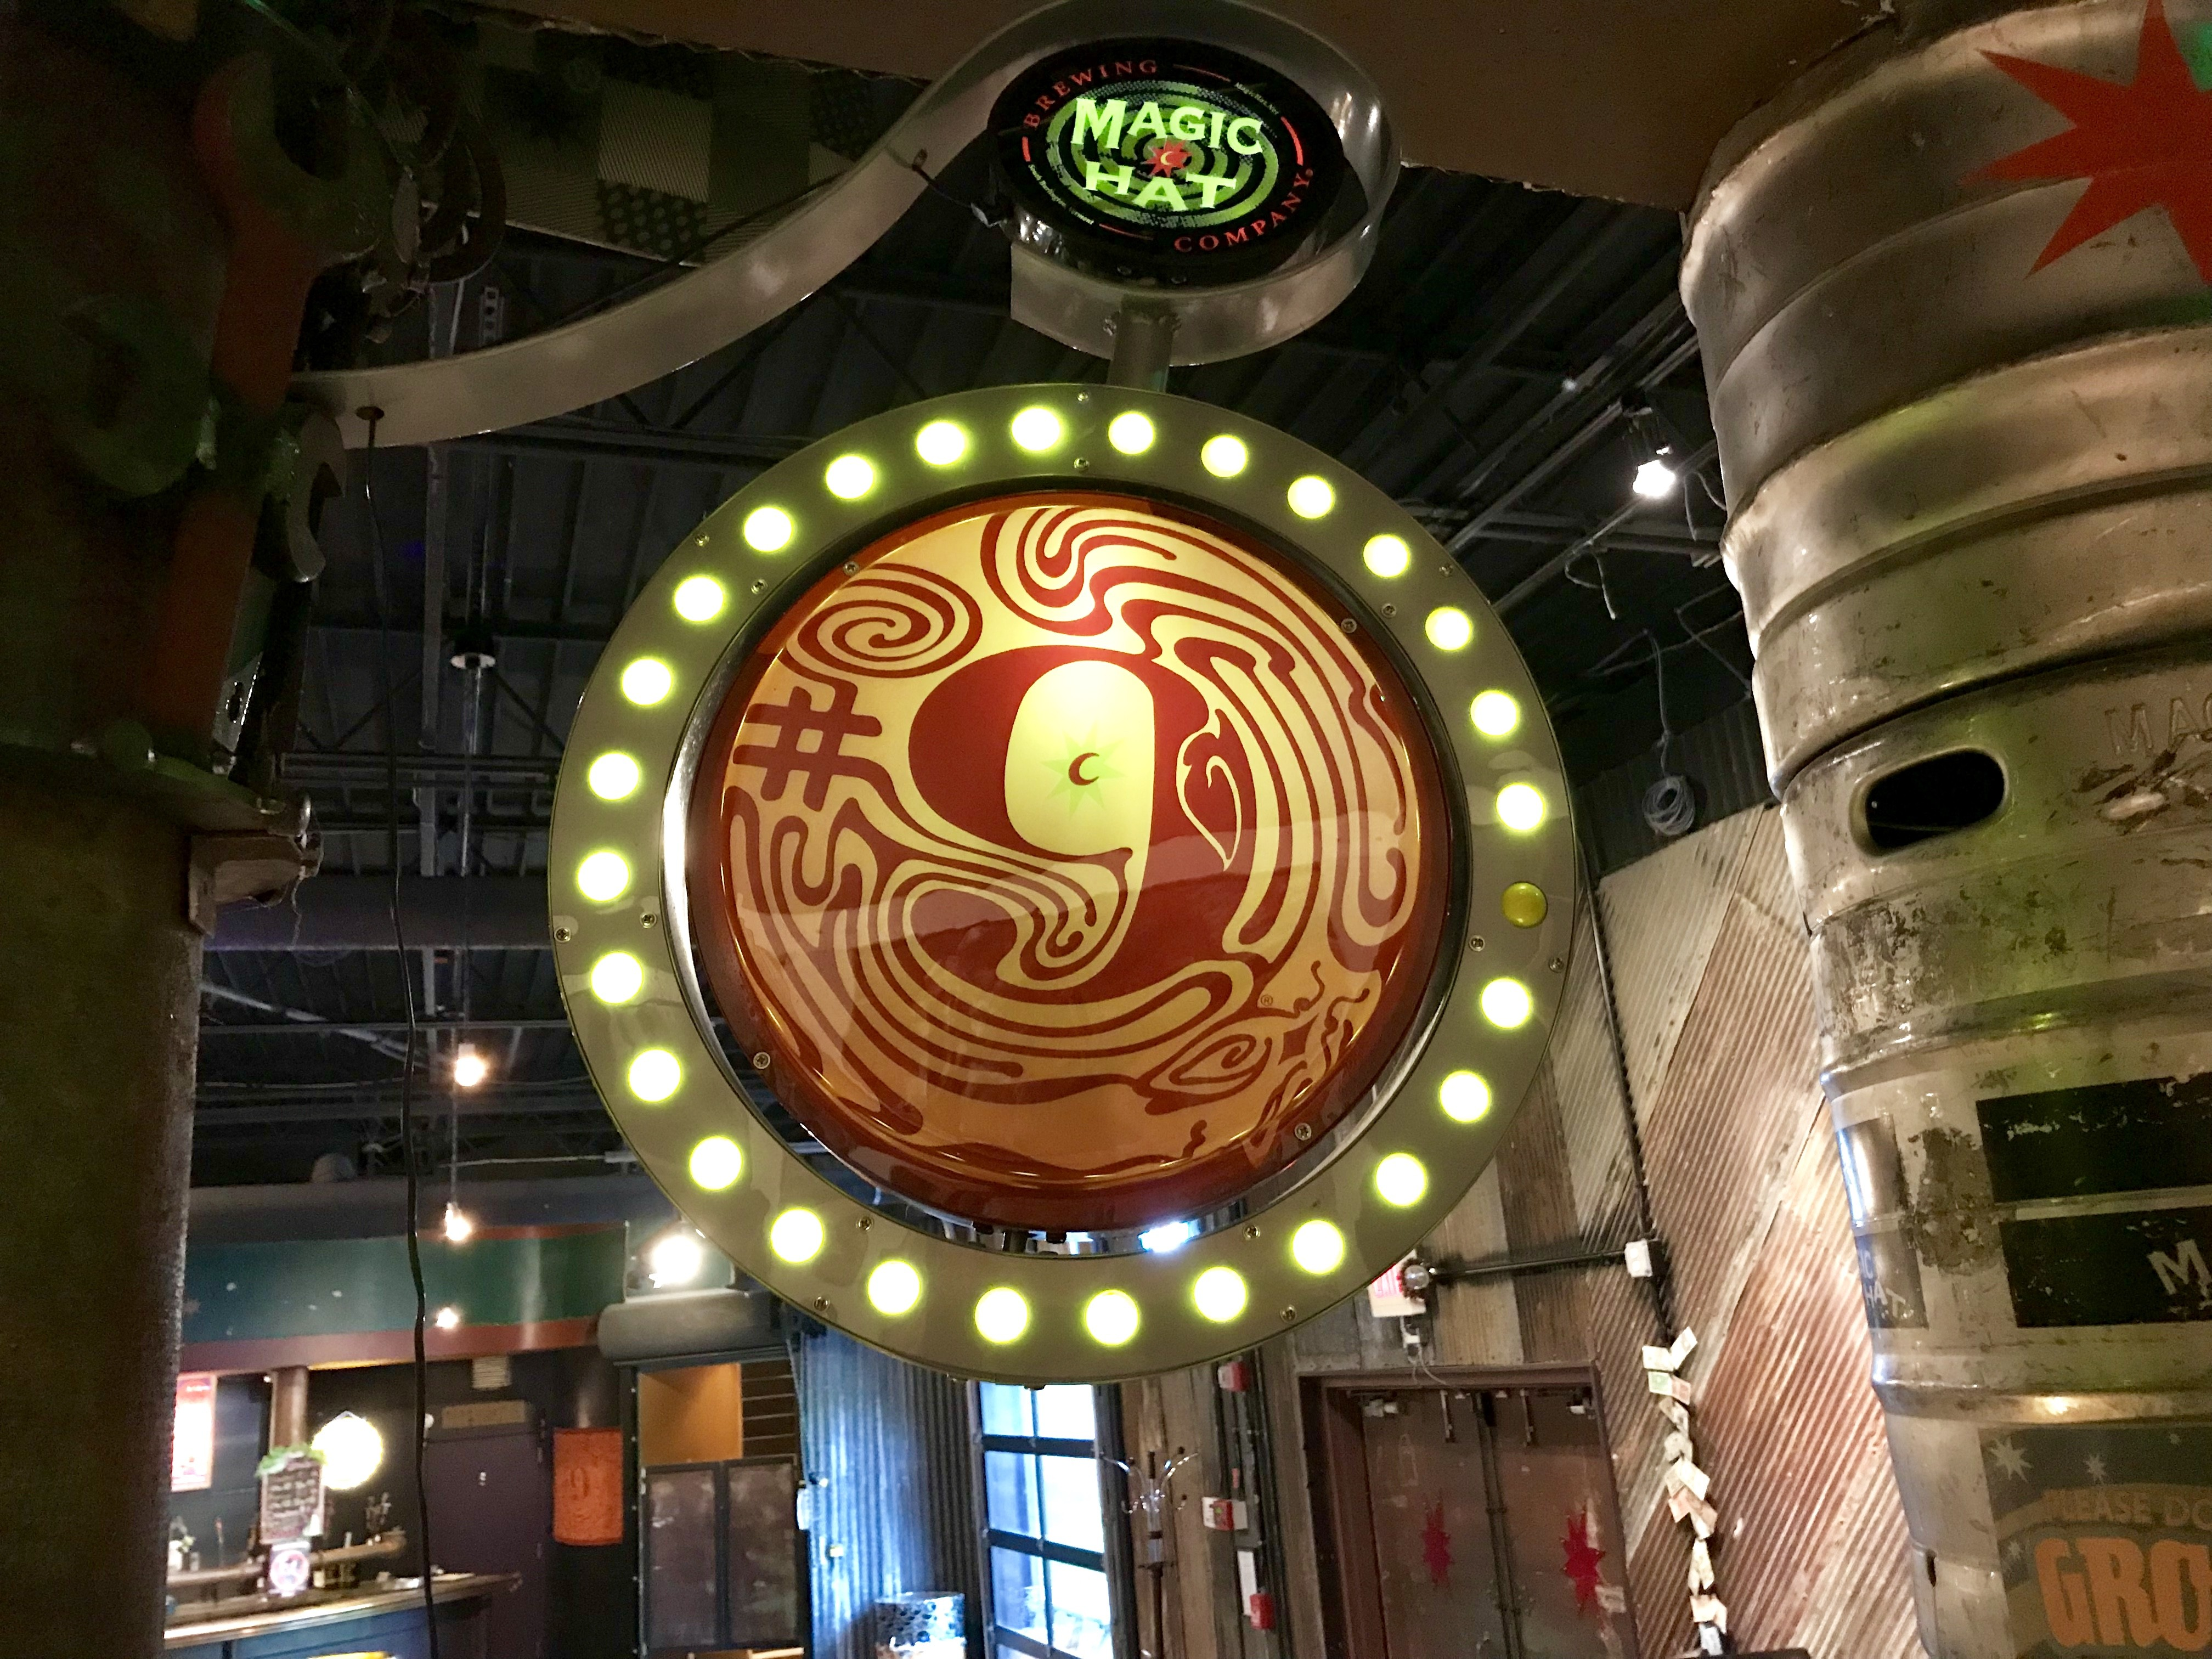 Dining on a Dime: Magic Hat Artifactory | Bite Club